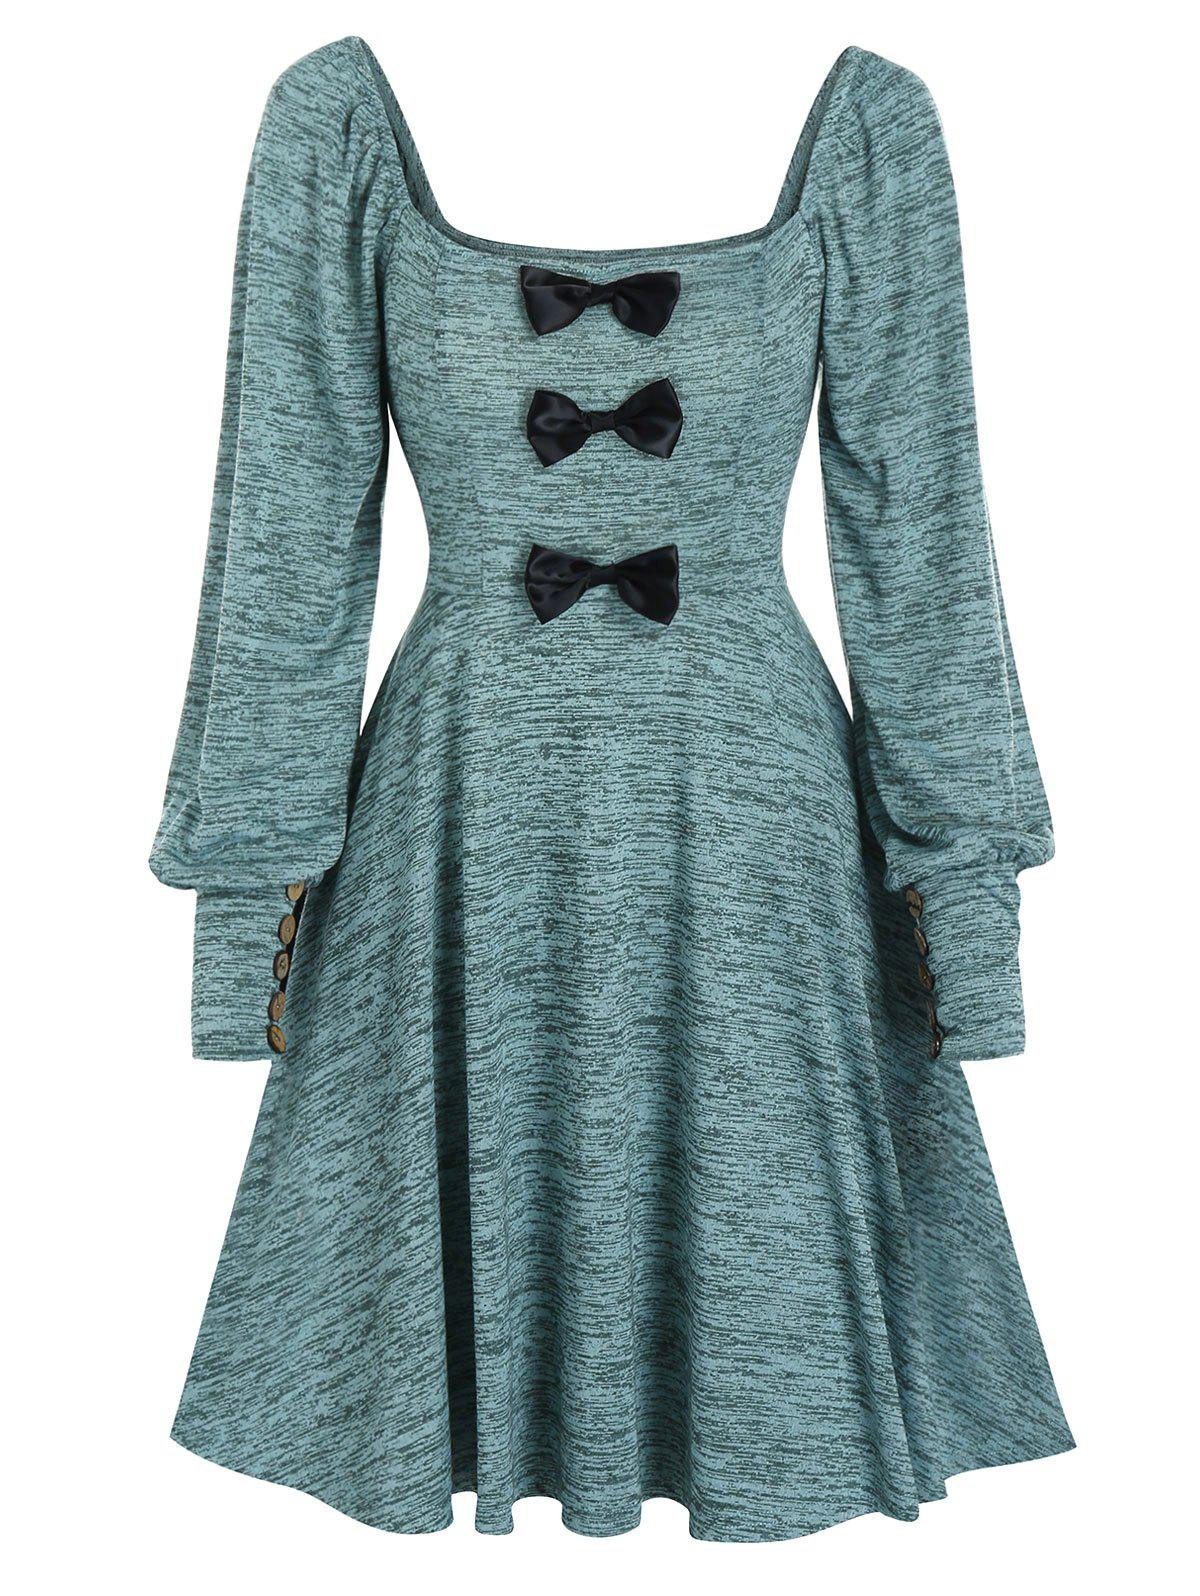 Square Collar Bow Puff Sleeve A Line Knitted Dress - PEACOCK BLUE XL